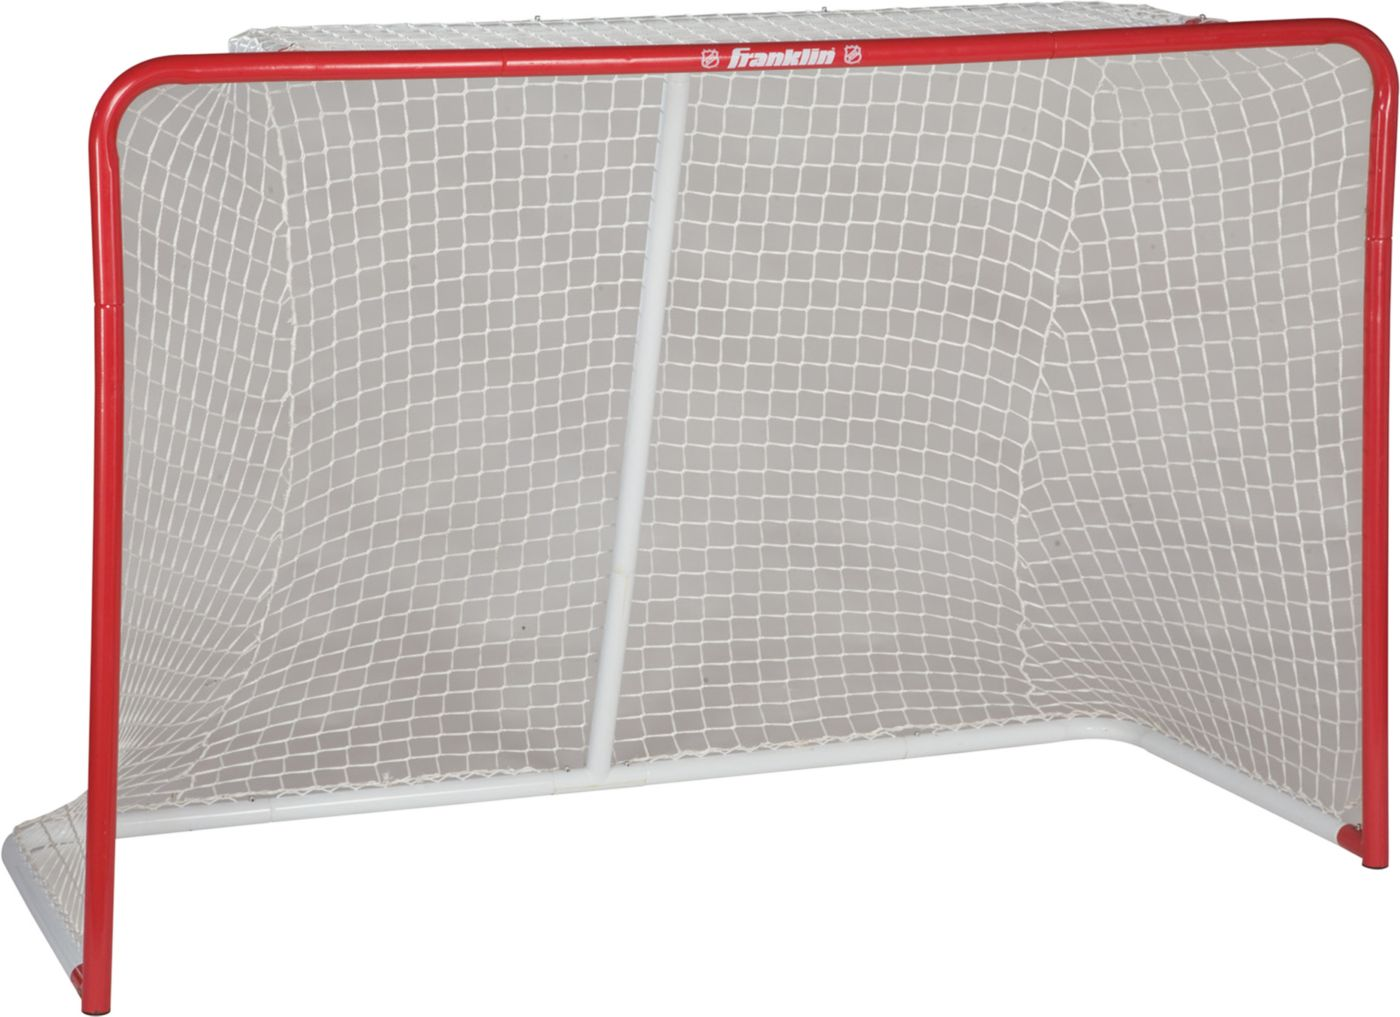 "Franklin 72"" NHL HX Pro Championship Steel Hockey Goal"